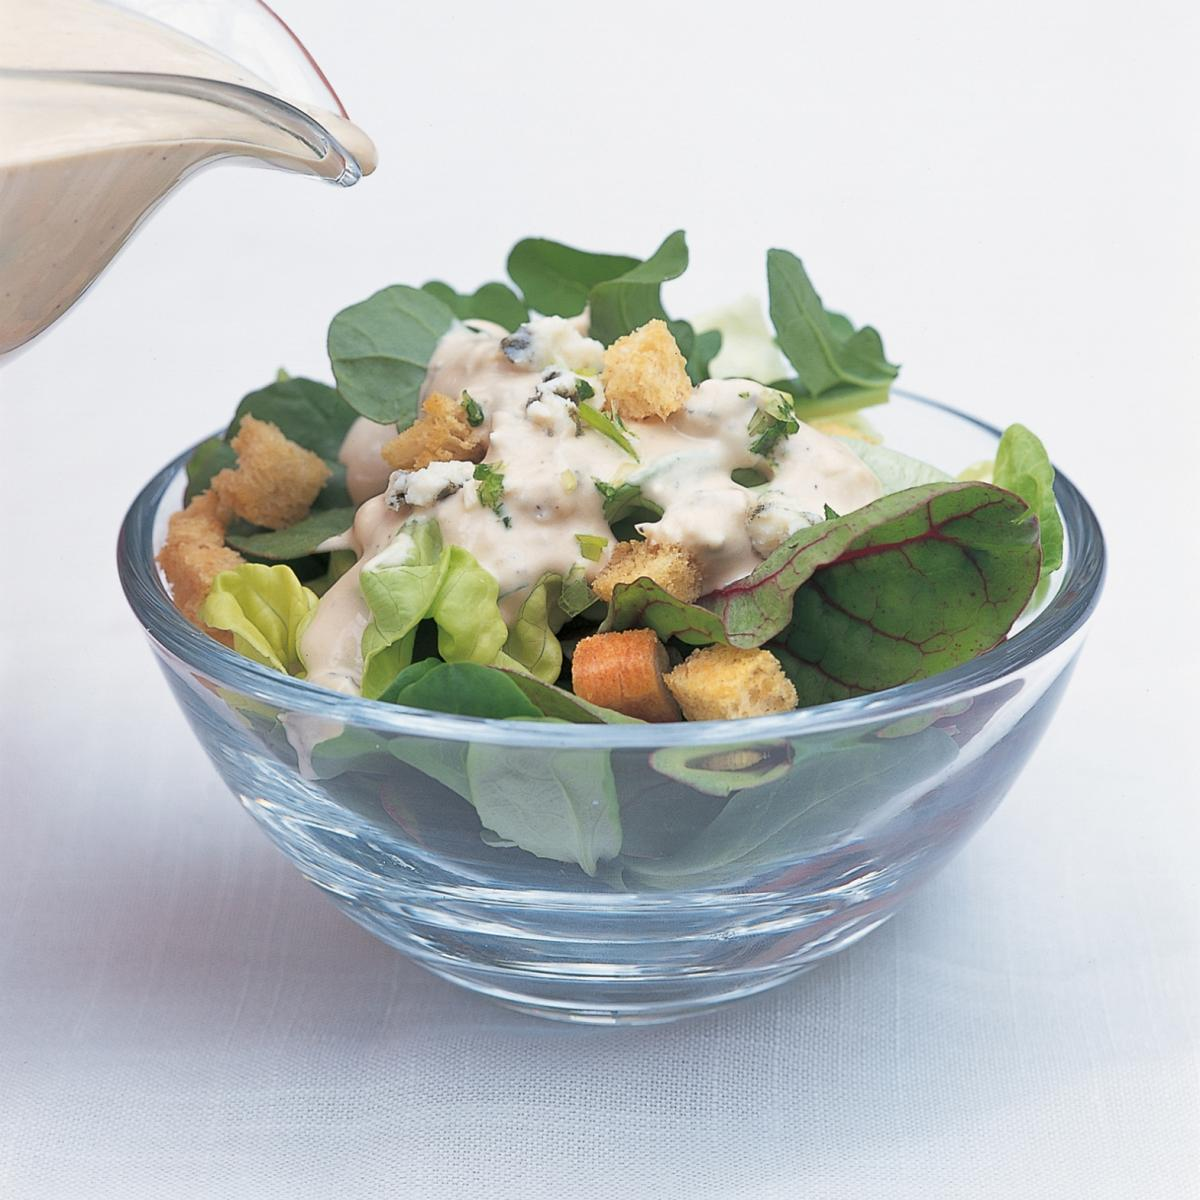 A picture of Delia's American Blue-cheese Dressing recipe